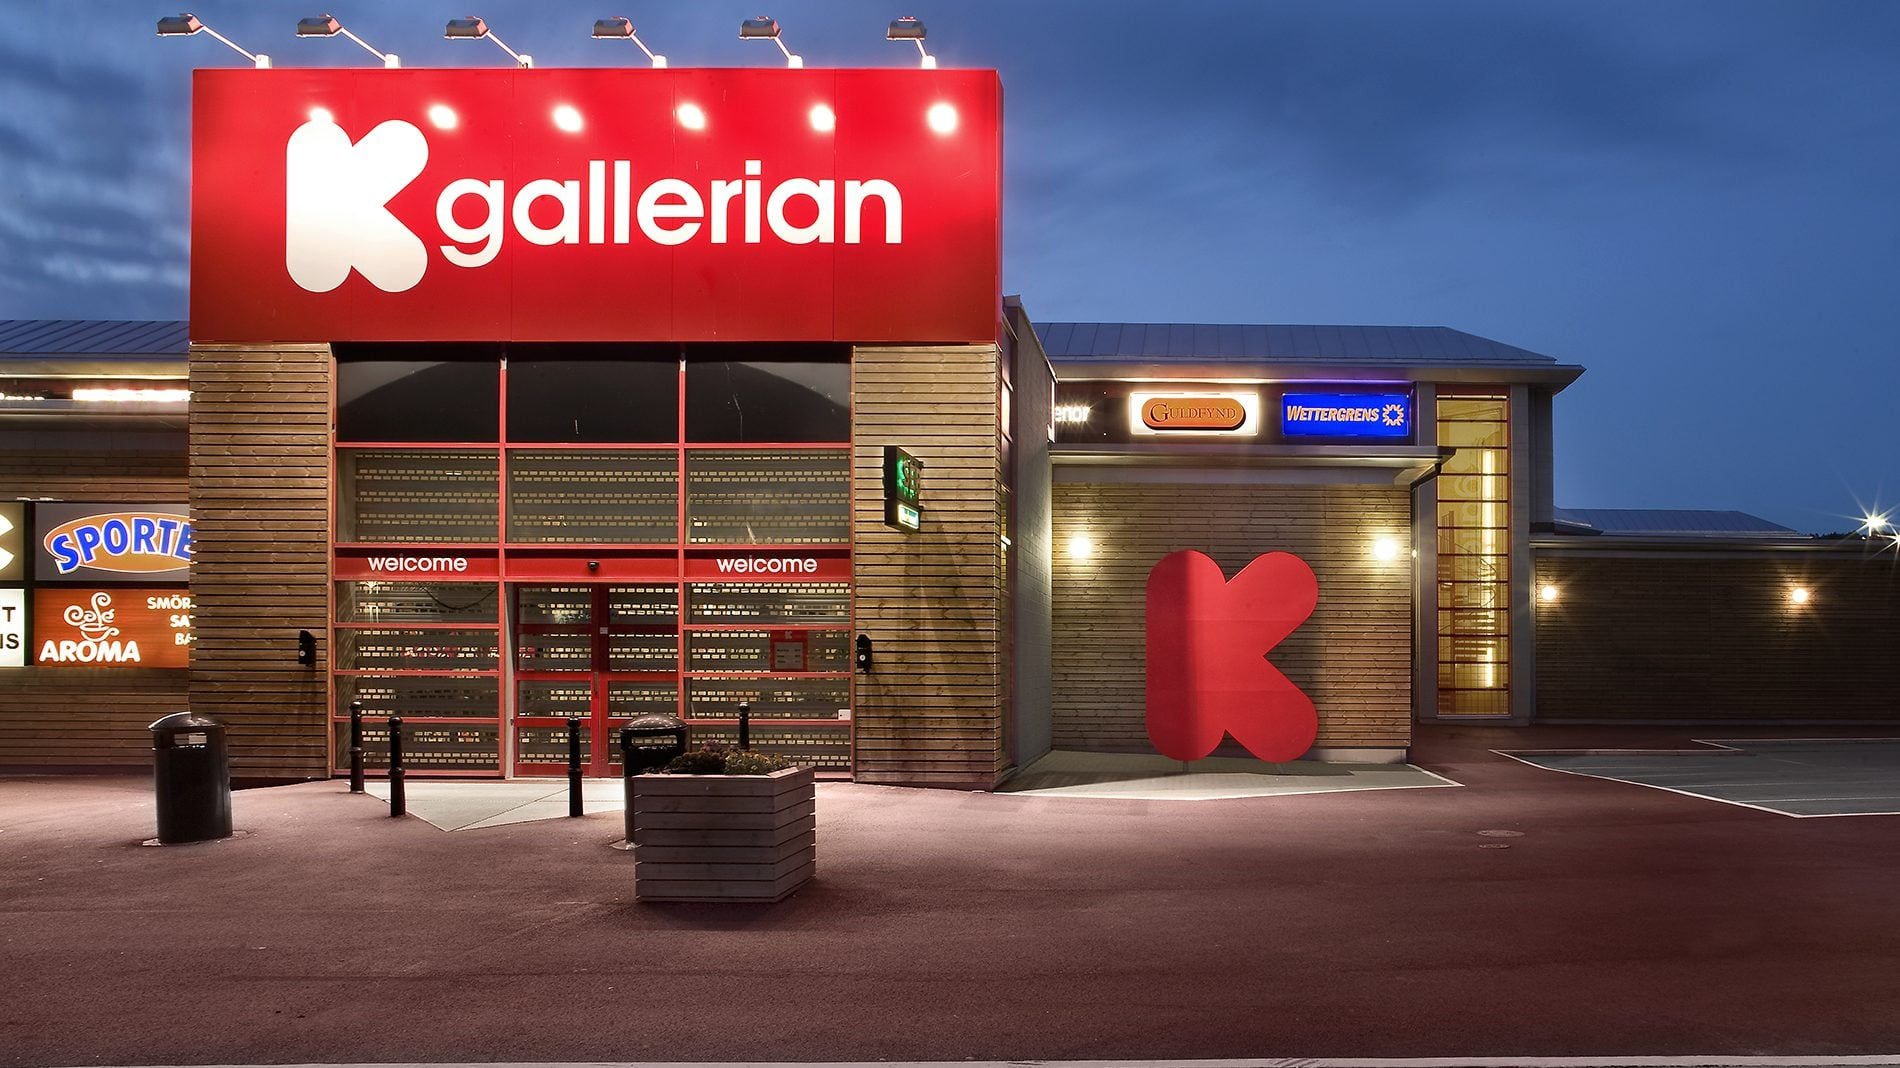 Front entrance exterior signage for Kallered shopping park